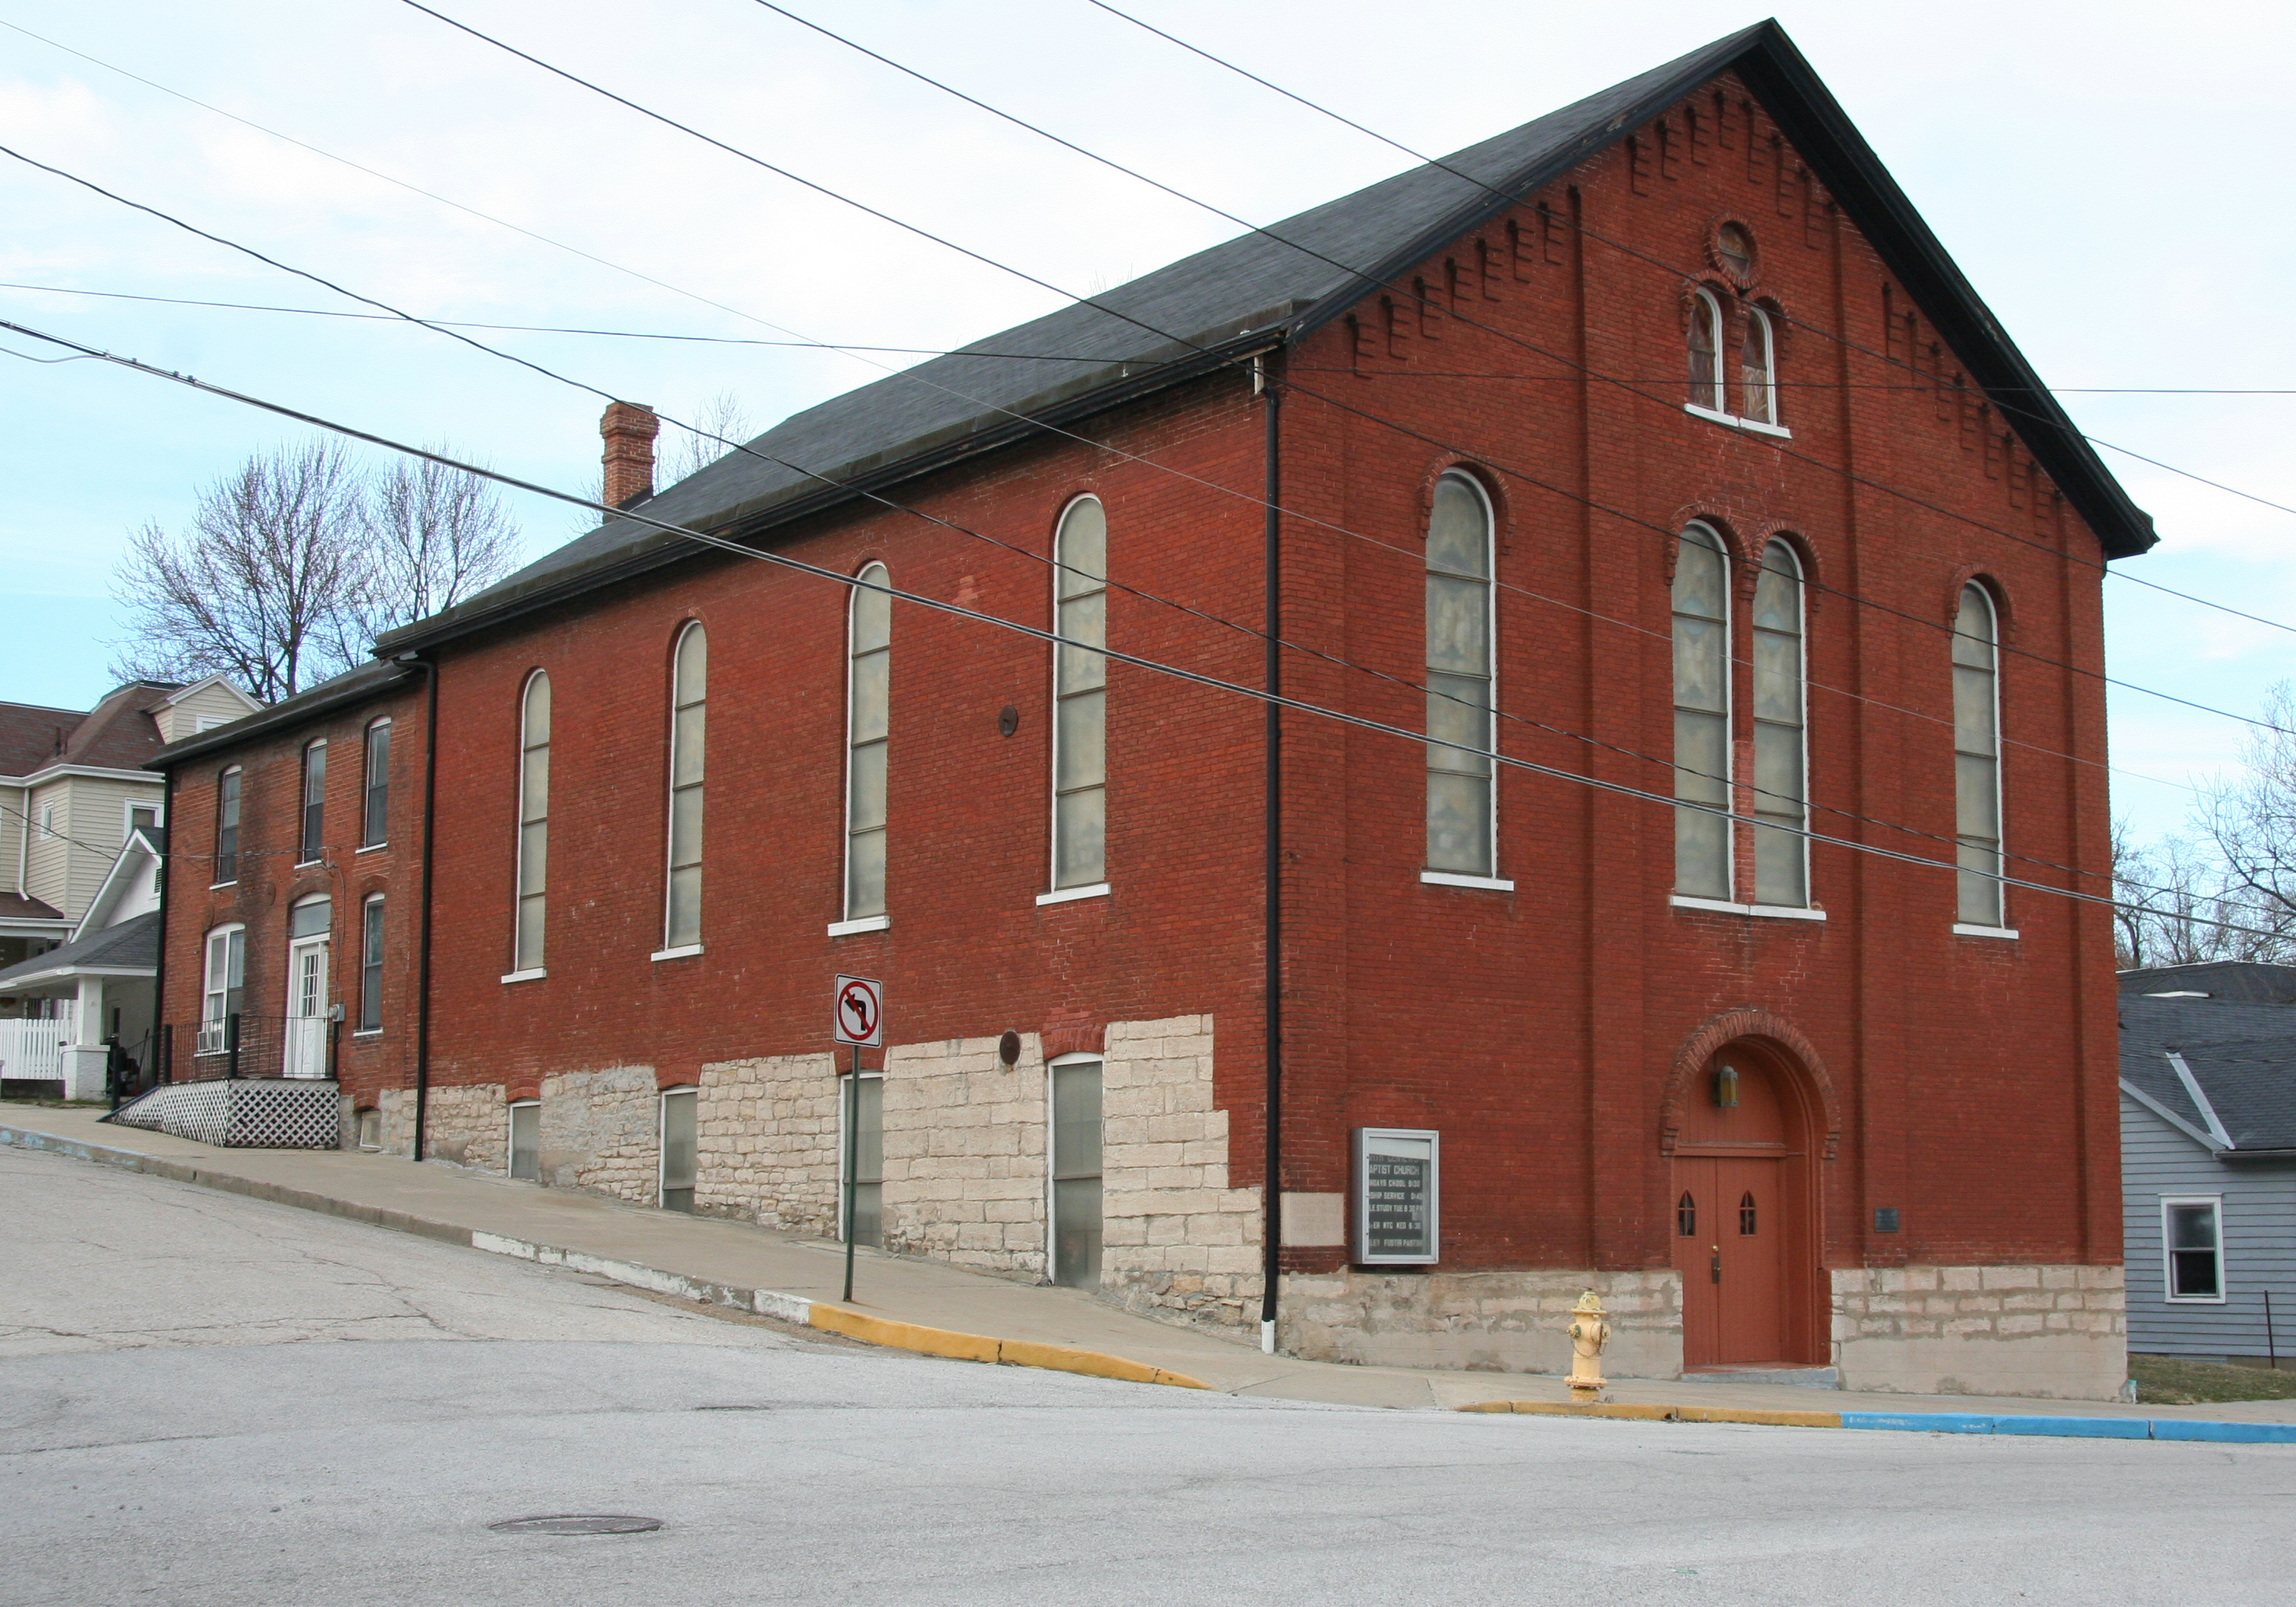 The Eighth and Center Streets Baptist Church was built in 1872, replacing the first one built in 1853. The church is an important religious and social gathering place for the African American community.